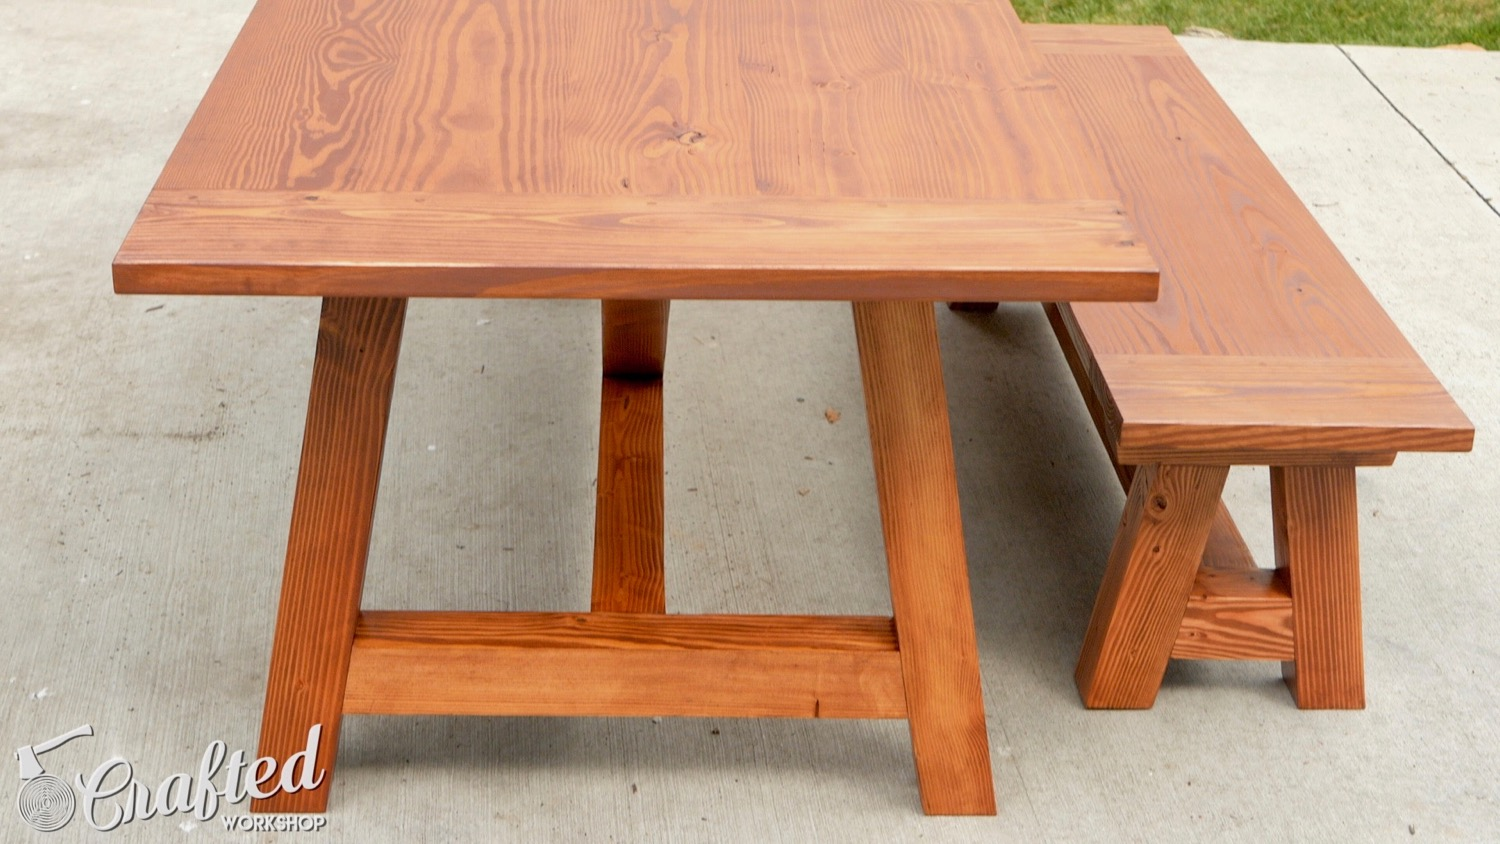 How To Build A Farmhouse Table And Benches For 250 Crafted Workshop